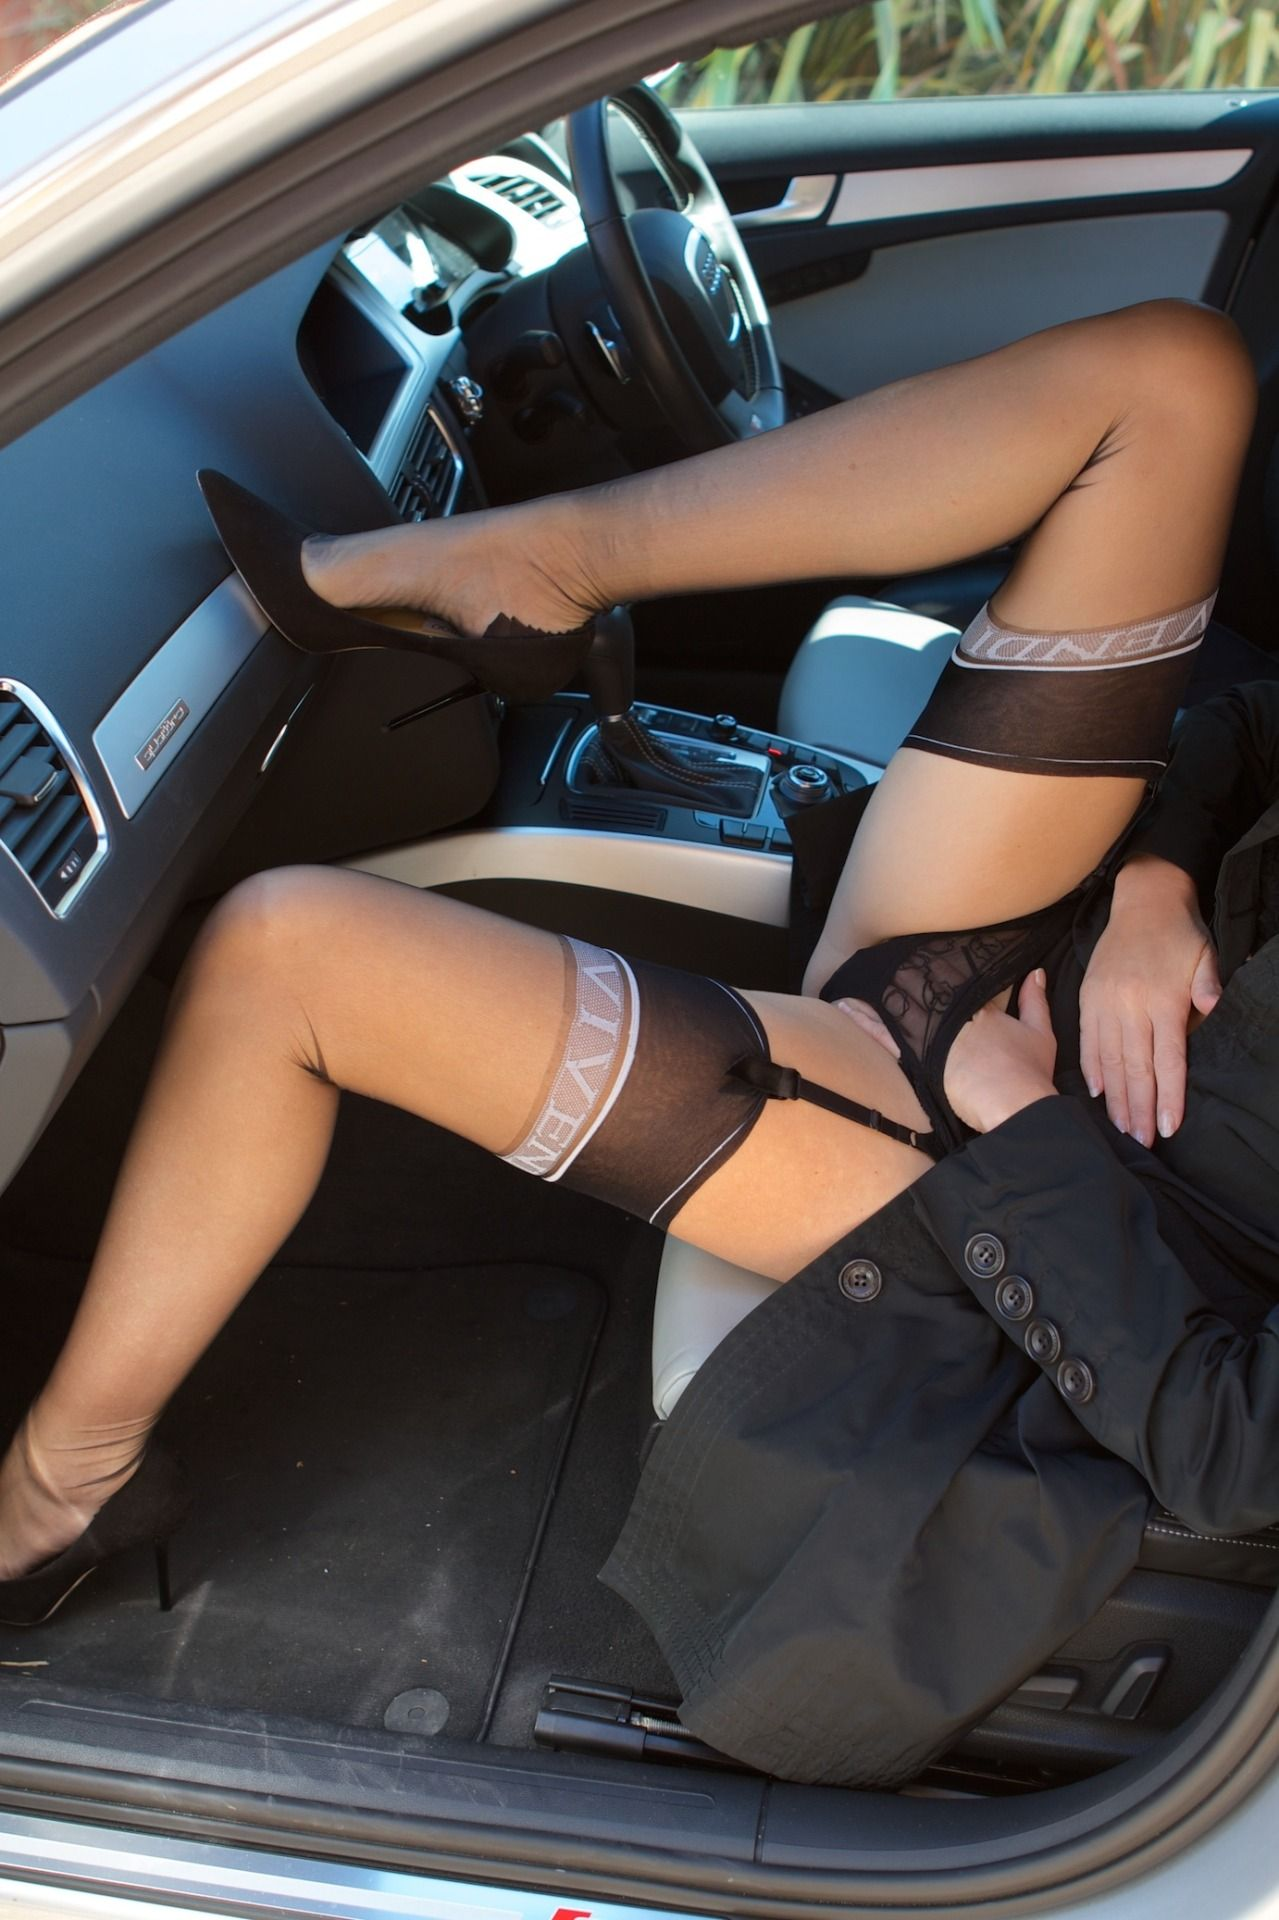 minturn milf women Date a cougar in arkansas - find hot sexy naked cougars in your area looking for casual sex or one night stands with single men, women and couples.